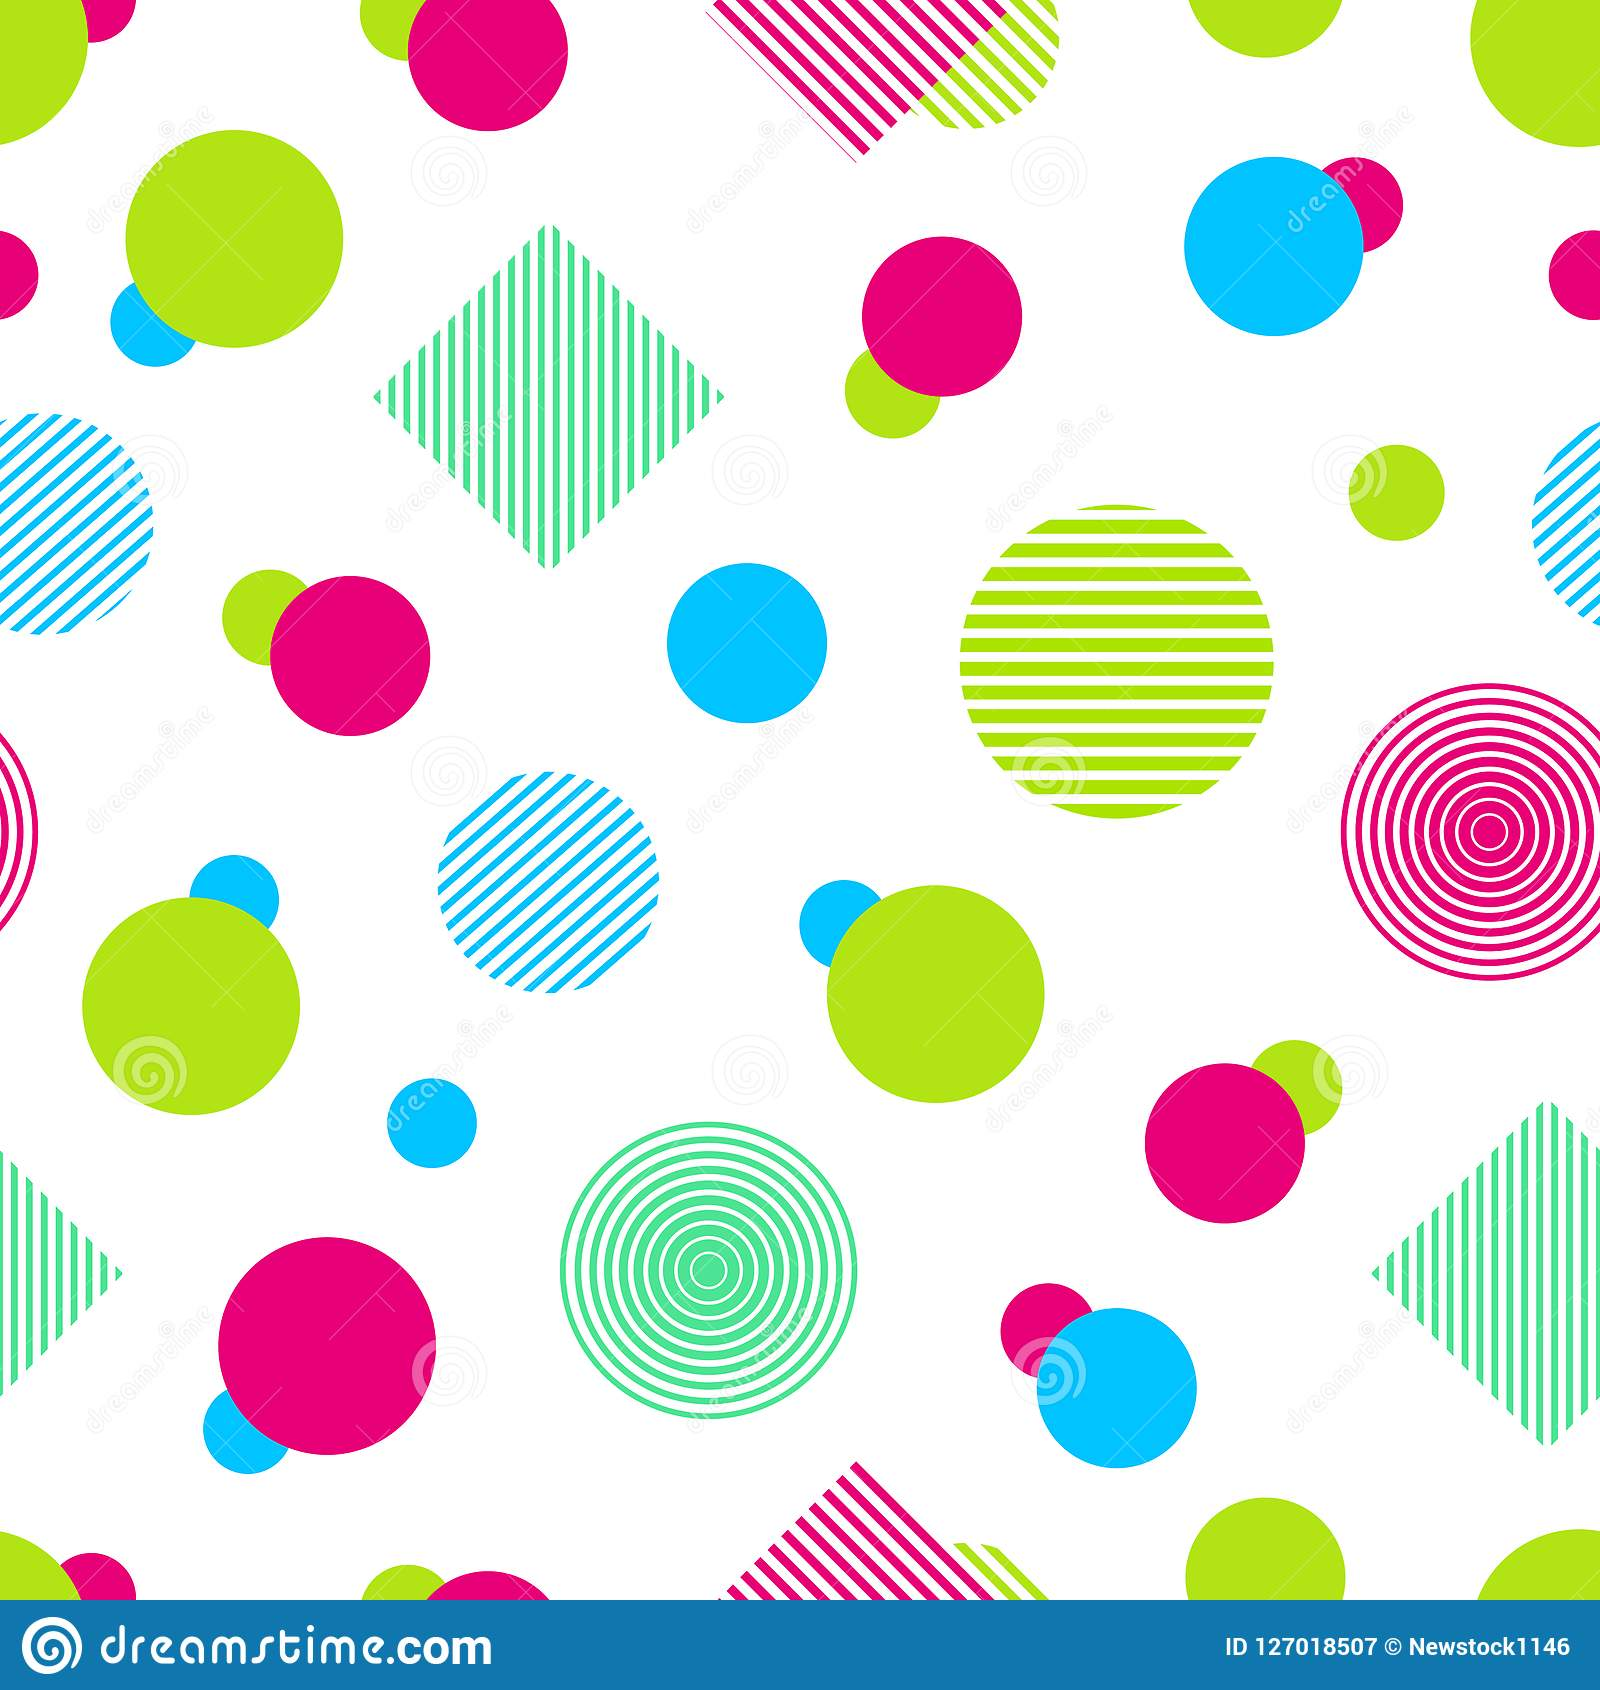 Vector colorful seamless pattern. Abstract background in bright colors. Colored geometric shapes. Simple modern repeated texture.